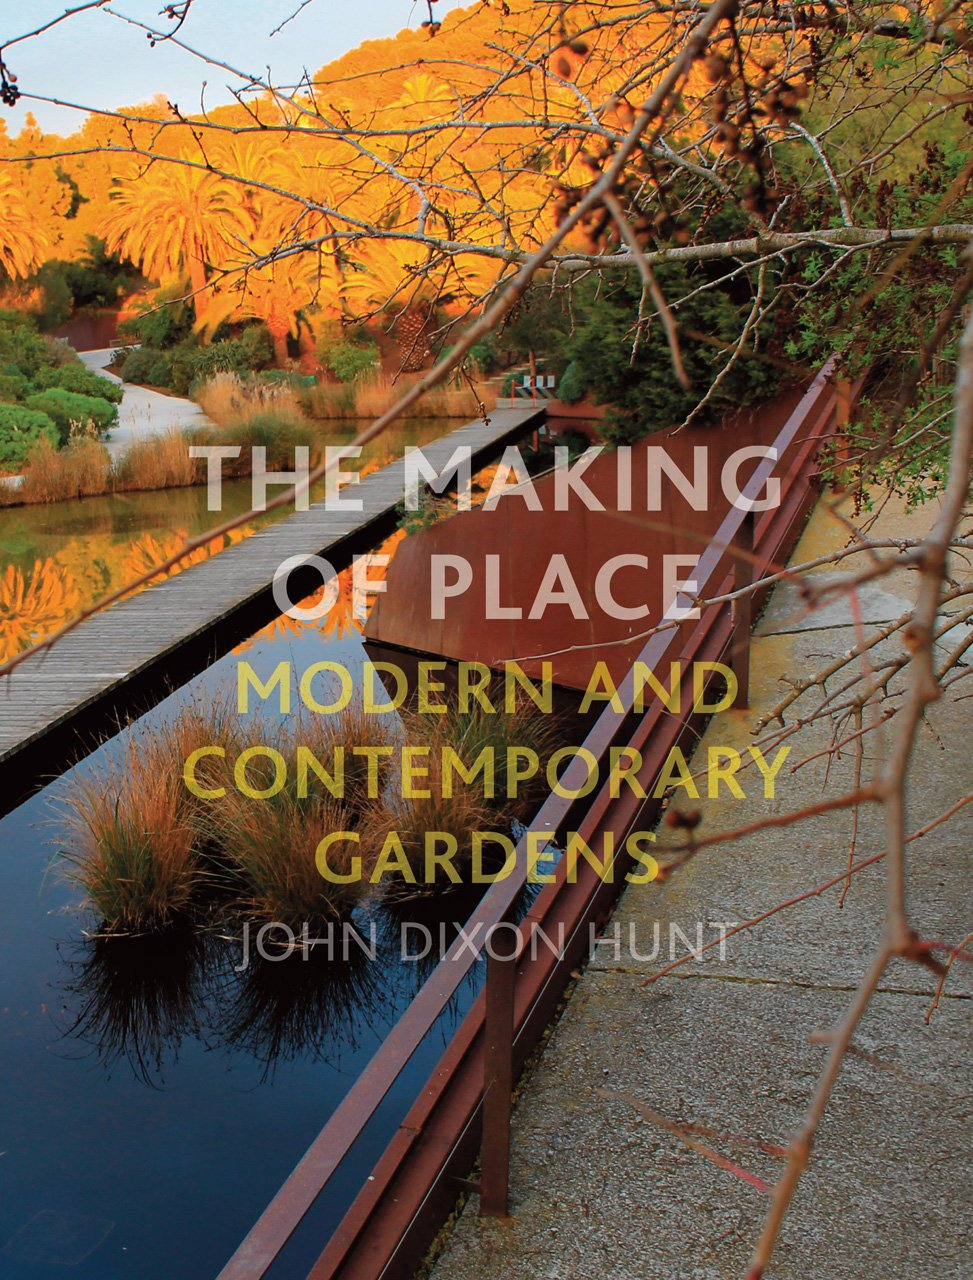 The Making of Place: Modern and Contemporary Gardens: John Dixon Hunt: 9781780235202: Amazon.com: Books & The Making of Place: Modern and Contemporary Gardens: John Dixon ...